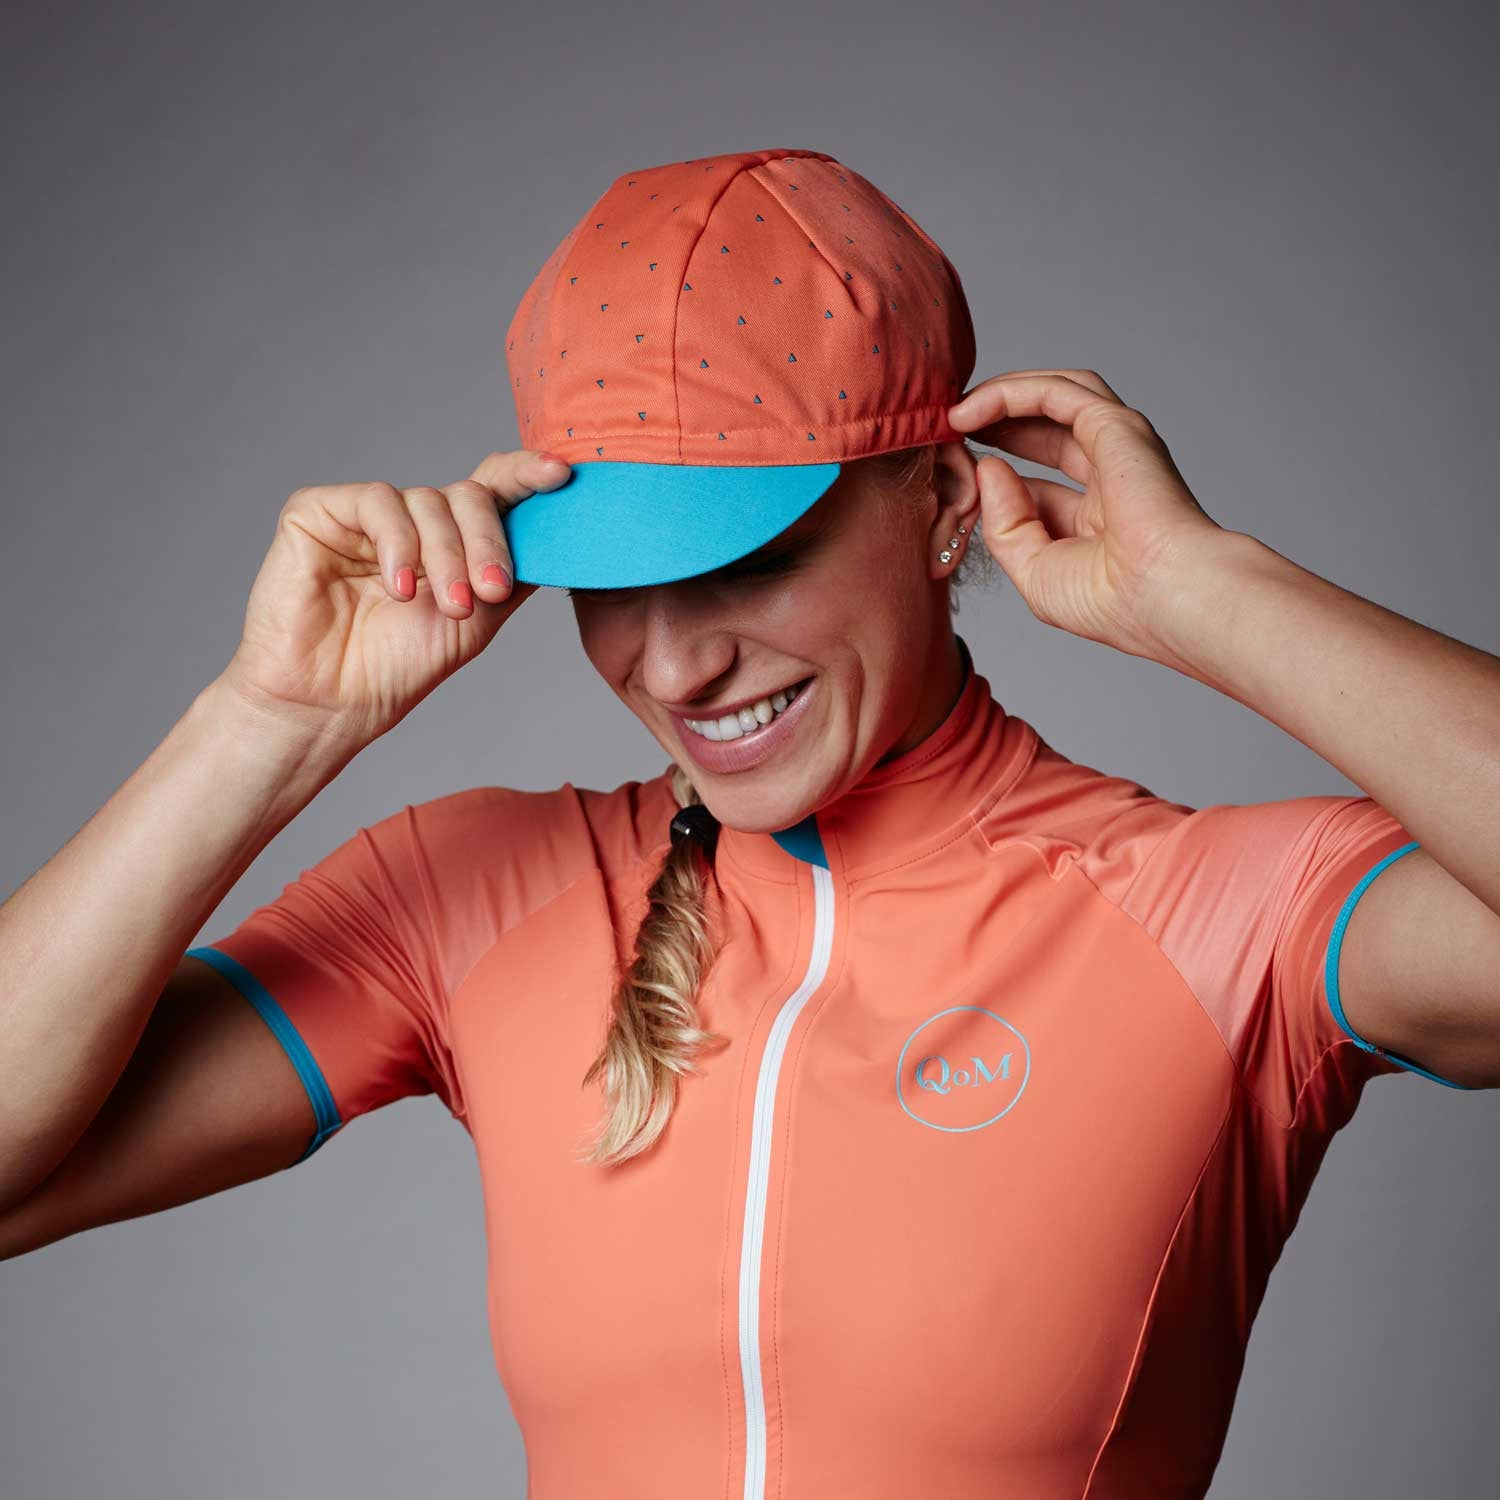 bf122ac14 Women s Cycling Summer Cap - Coral Orange - Queen of the Mountains